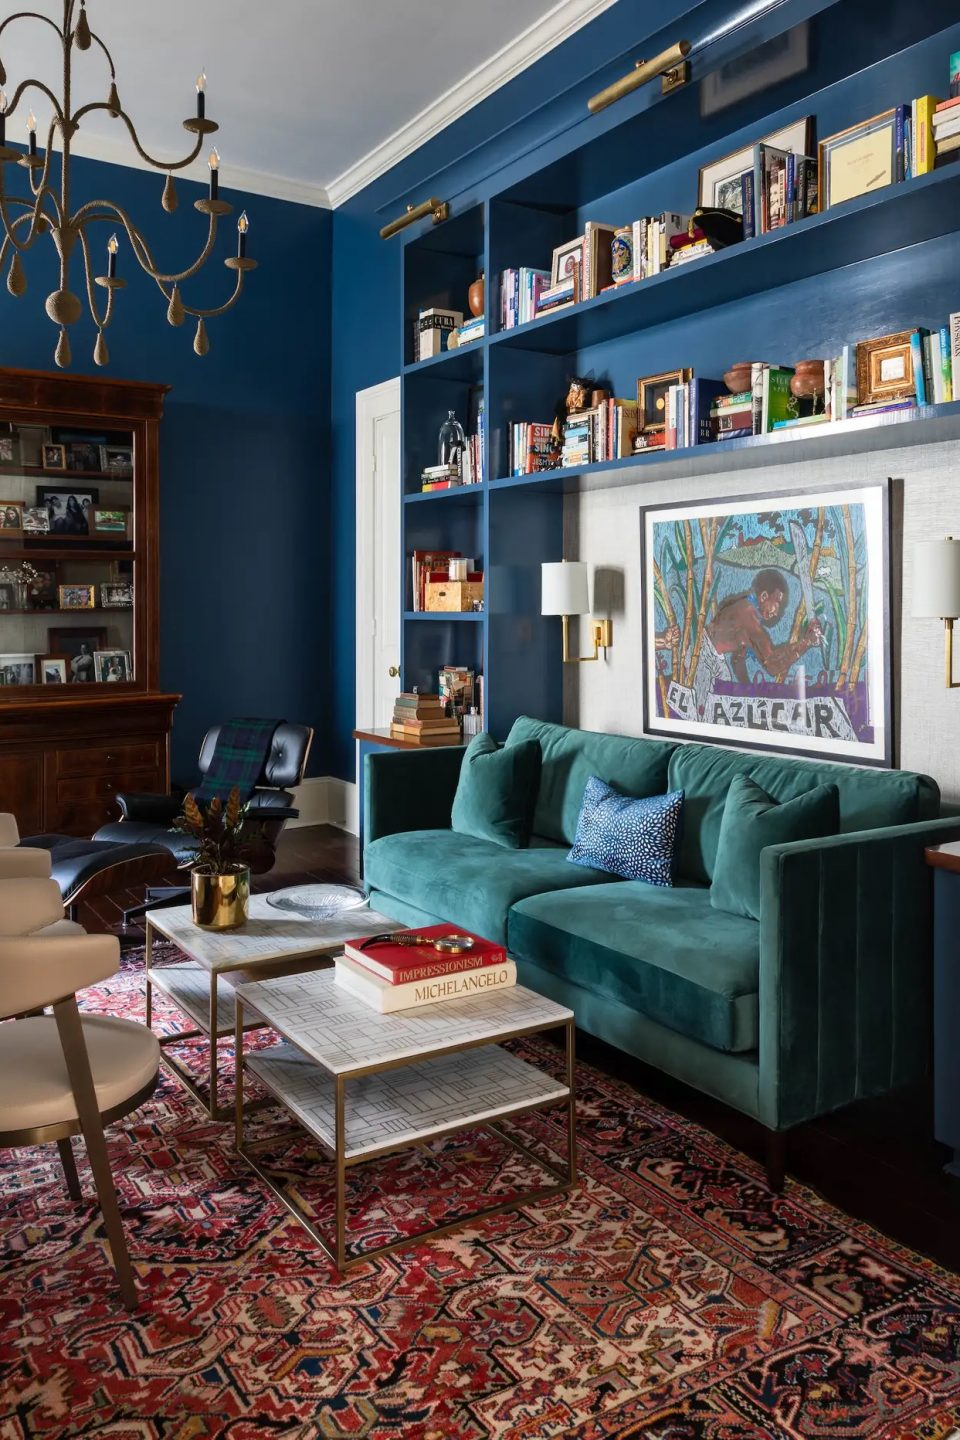 The Mix-Master Designer behind Eclectic Home Lives Up to Her Firm's Name